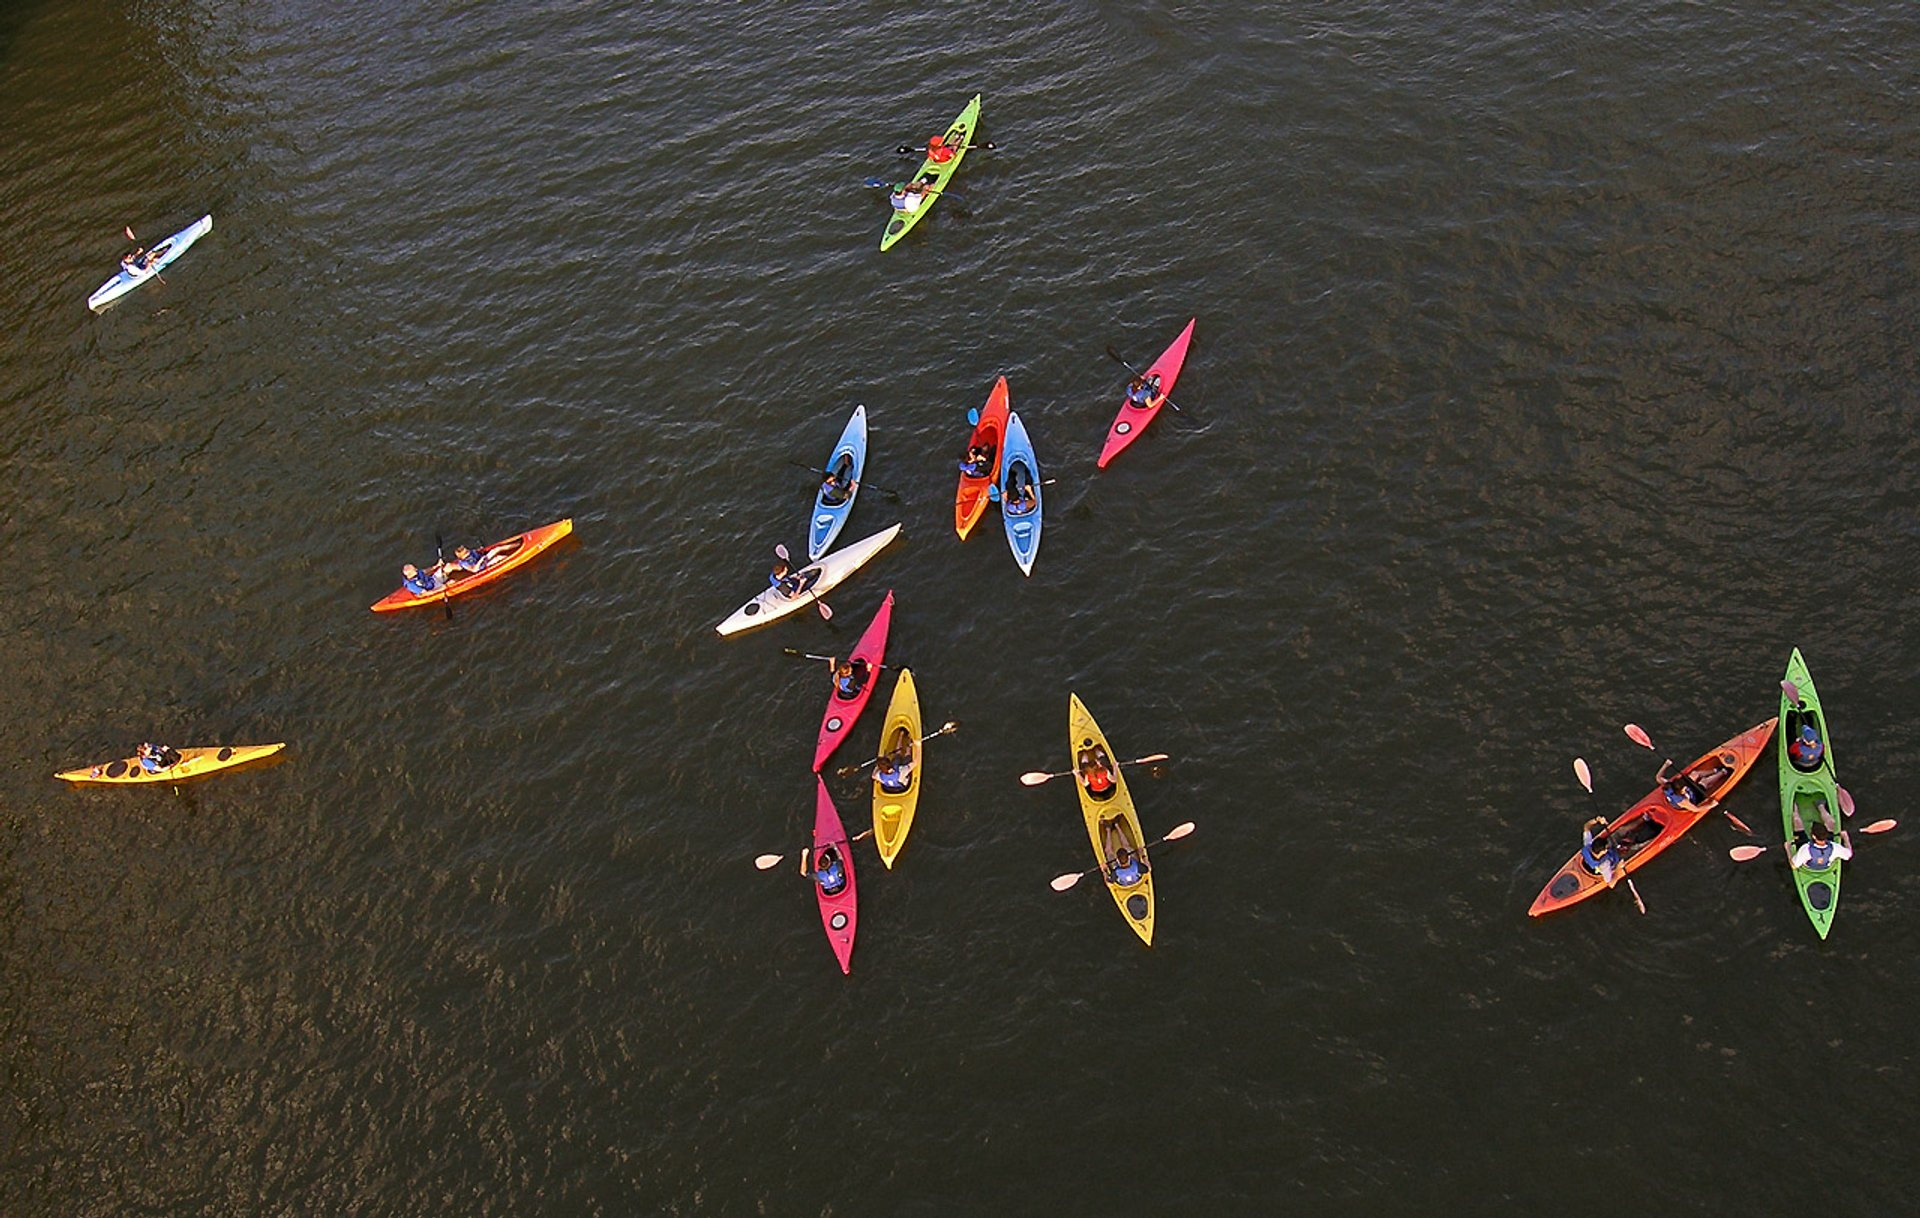 Best time for Kayaking, Paddling, and Canoeing on the Potomac in Washington, D.C. 2020